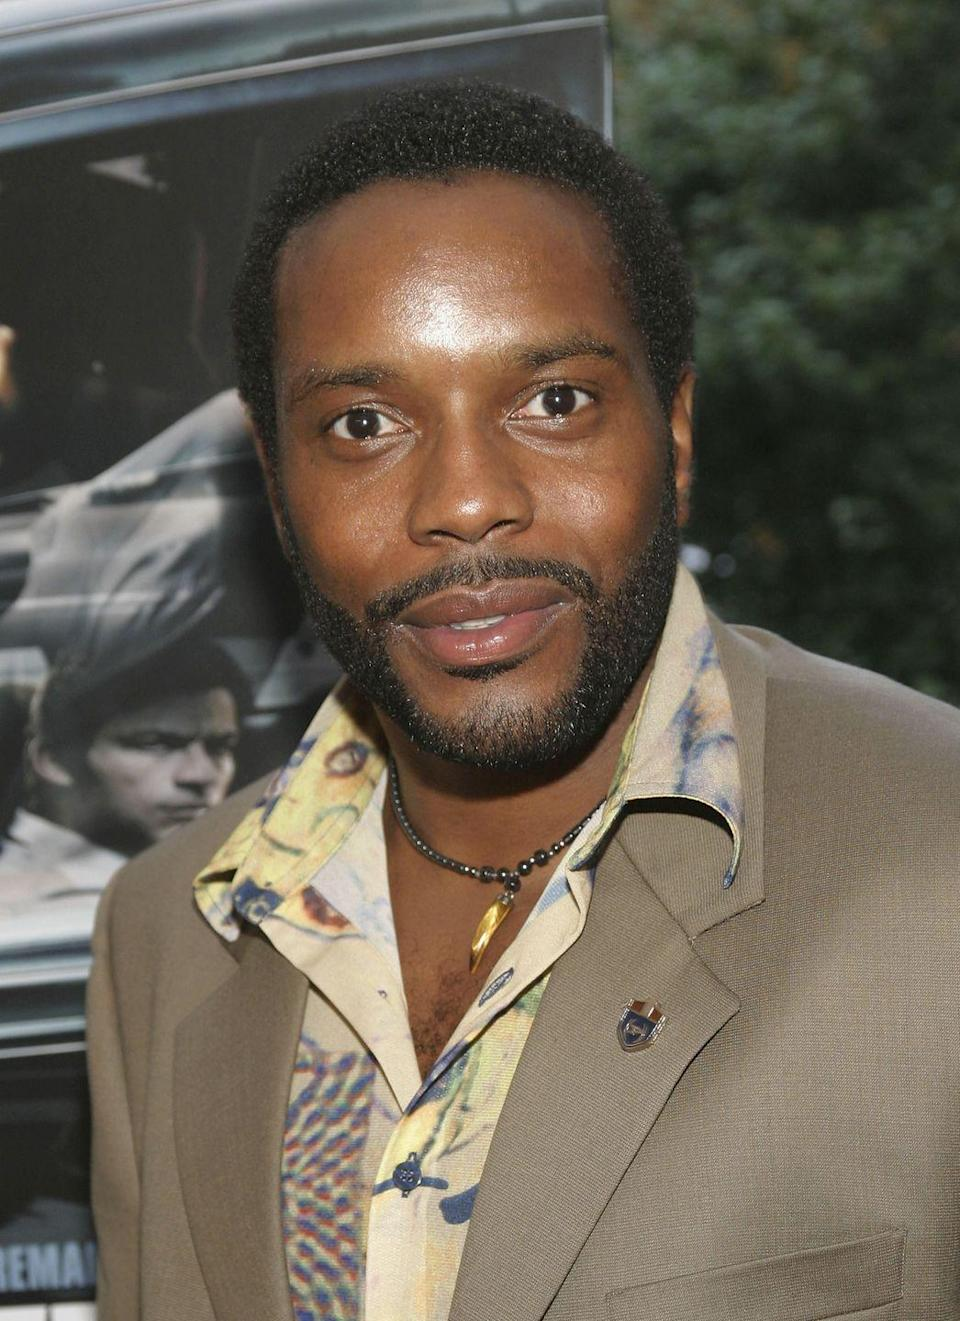 """<p>Coleman's turn as Dennis """"Cutty"""" Wise, a reformed criminal who opens a boxing gym to keep kids off the streets, gave one of the few glimmers of hope in <em>The Wire'</em>s otherwise dark Baltimore underworld. Coleman told <a href=""""https://www.maxim.com/entertainment/maxim-interrogates-makers-and-stars-wire"""" rel=""""nofollow noopener"""" target=""""_blank"""" data-ylk=""""slk:Maxim"""" class=""""link rapid-noclick-resp""""><em>Maxim</em></a> the show reflected much of what he witnessed when he came of age, explaining, """"Crack just obliterated the city, and gave it a certain desperation and hardness. I grew up around that sort of stuff. I wasn't in the projects, but I was three blocks away.""""</p>"""